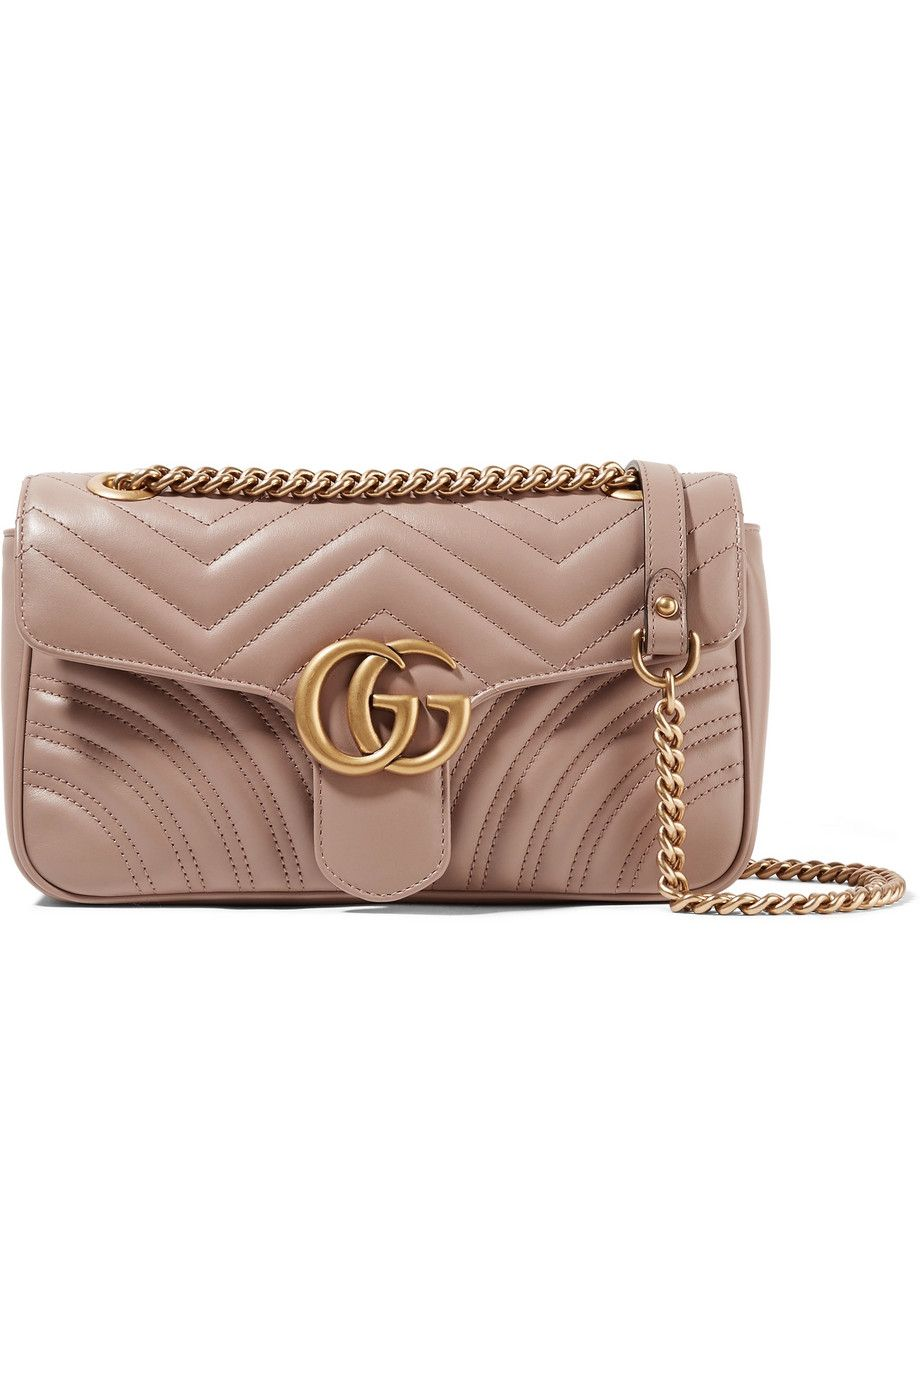 892a4e68371077 gucci marmont nude antique rose small | <3 in 2019 | Gucci marmont ...